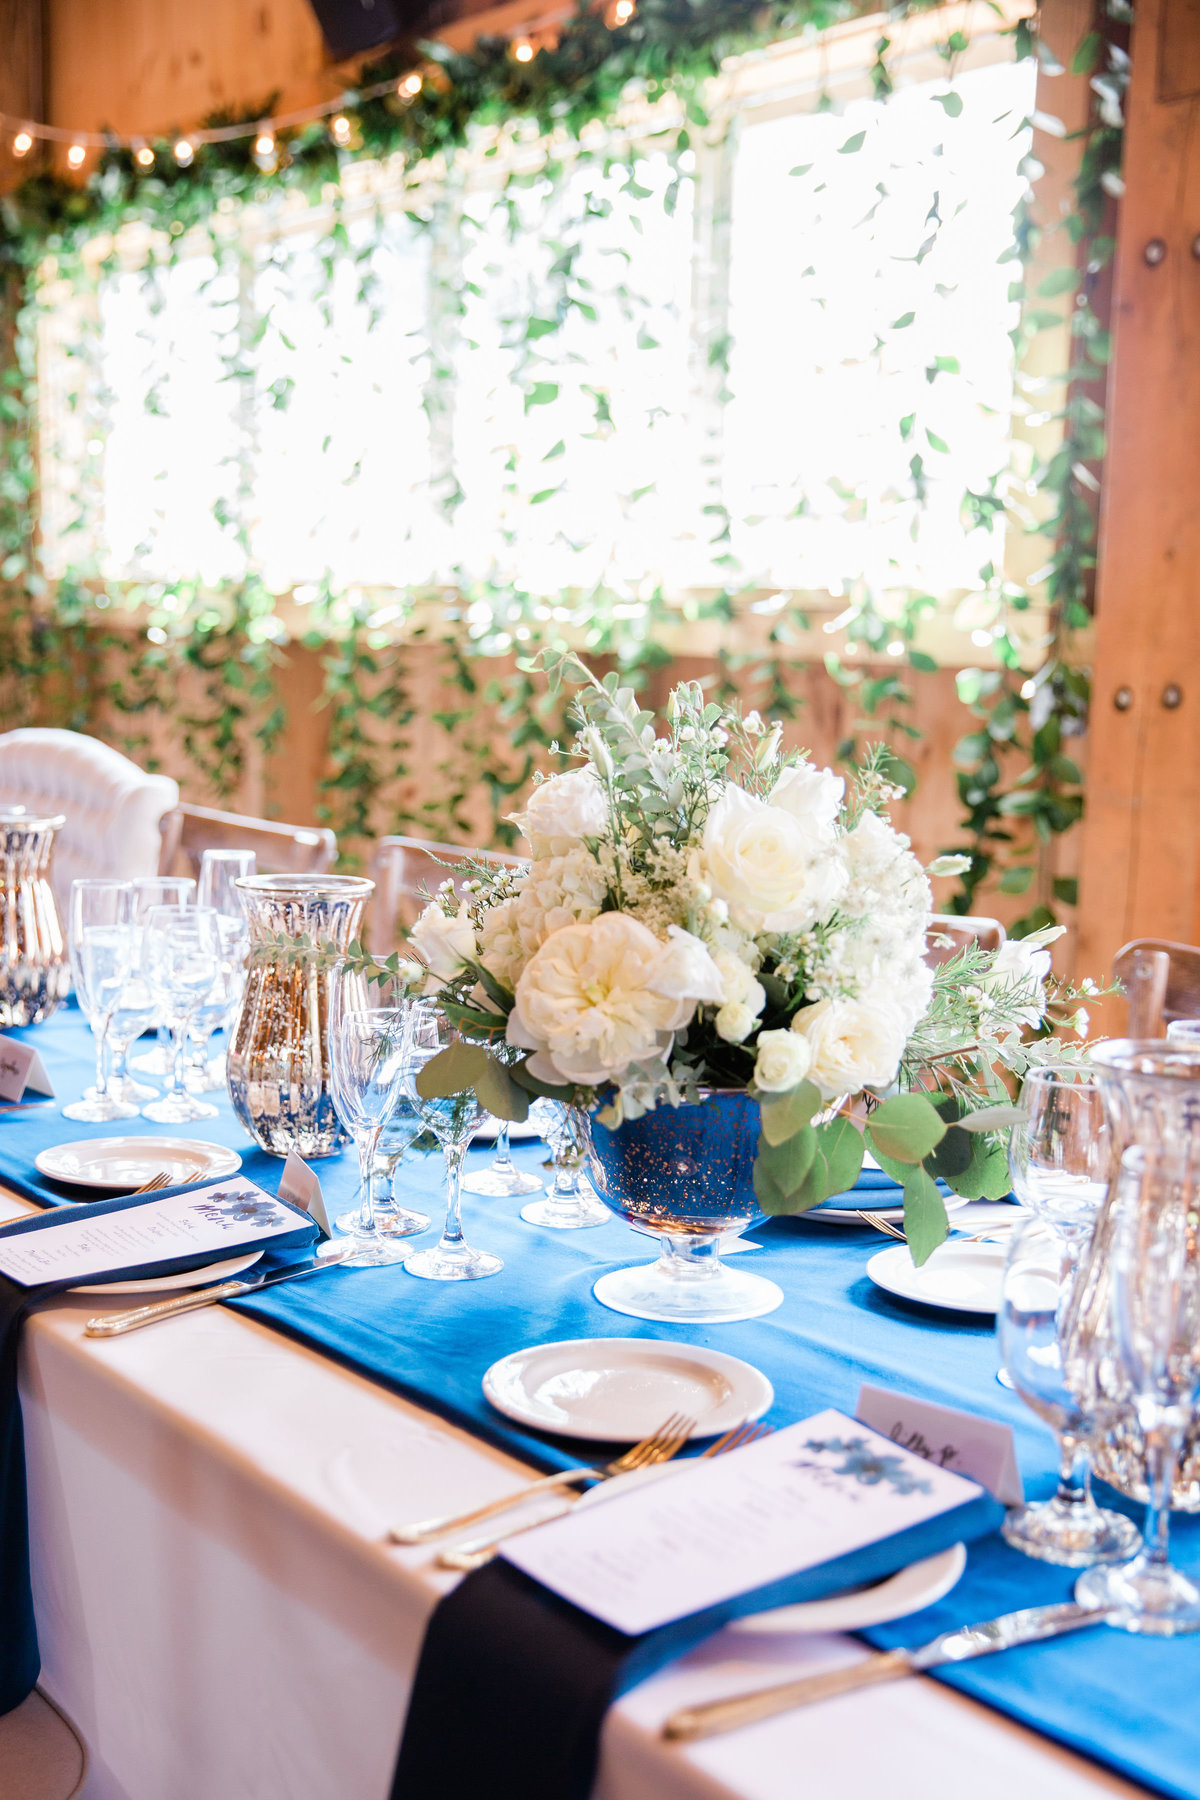 events-by-carianne-event-planner-wedding-planner-outdoor-wedding-mountain-top-wedding-anthropologie-wedding-new-england-boston-rhode-island-maine-new-hampshire-laura-rose-photography 59